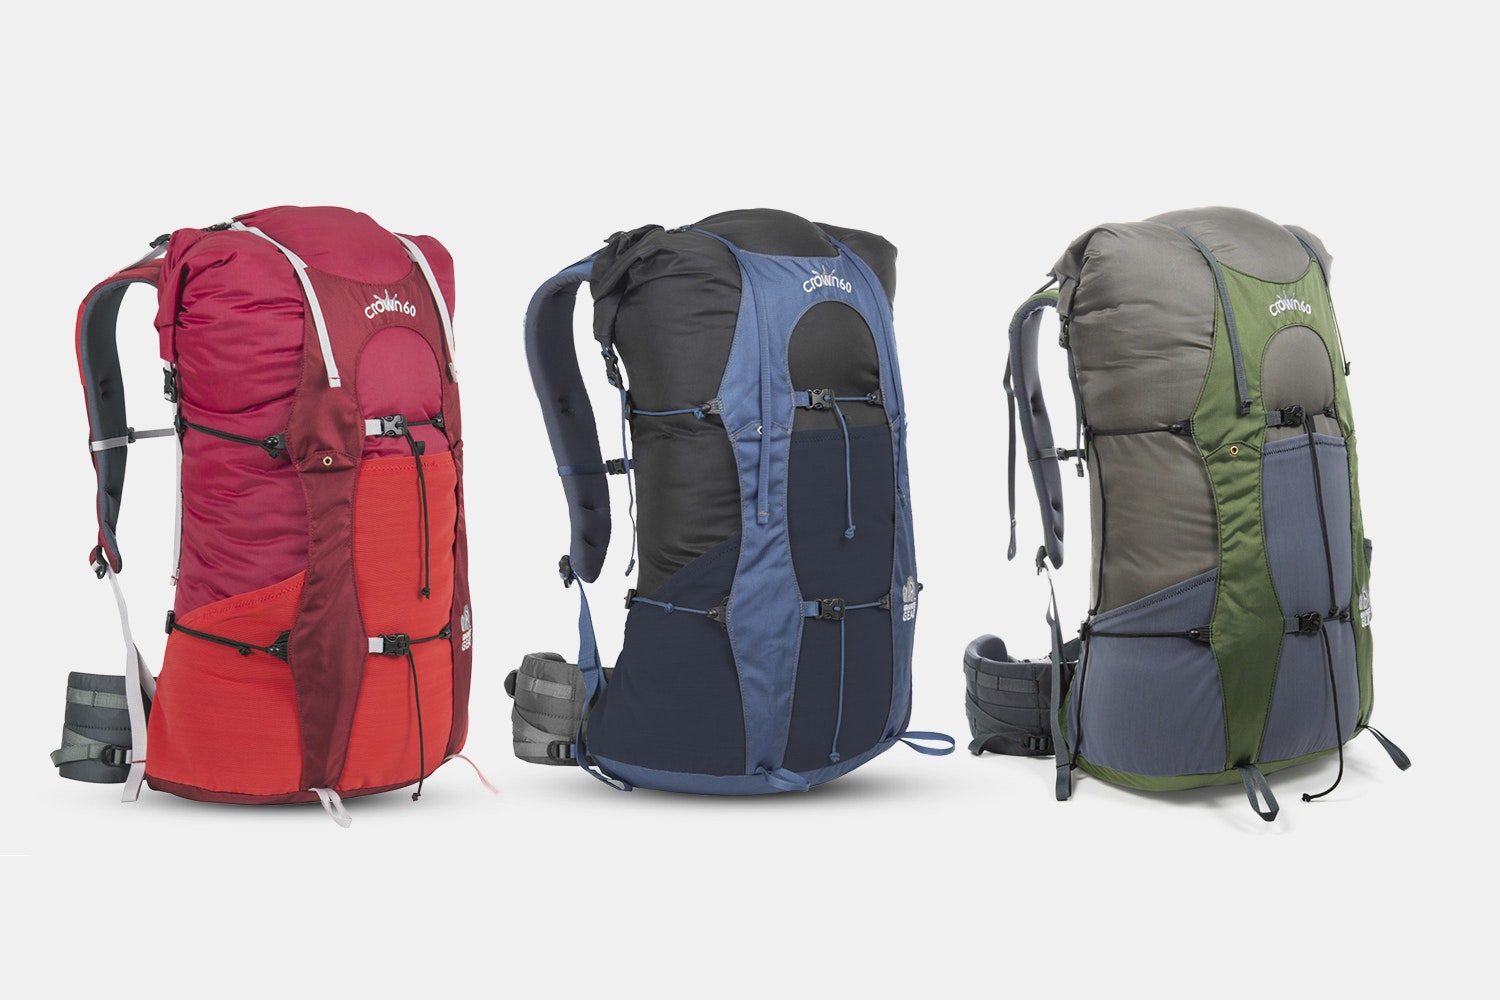 Granite Gear Crown 60 Backpacks